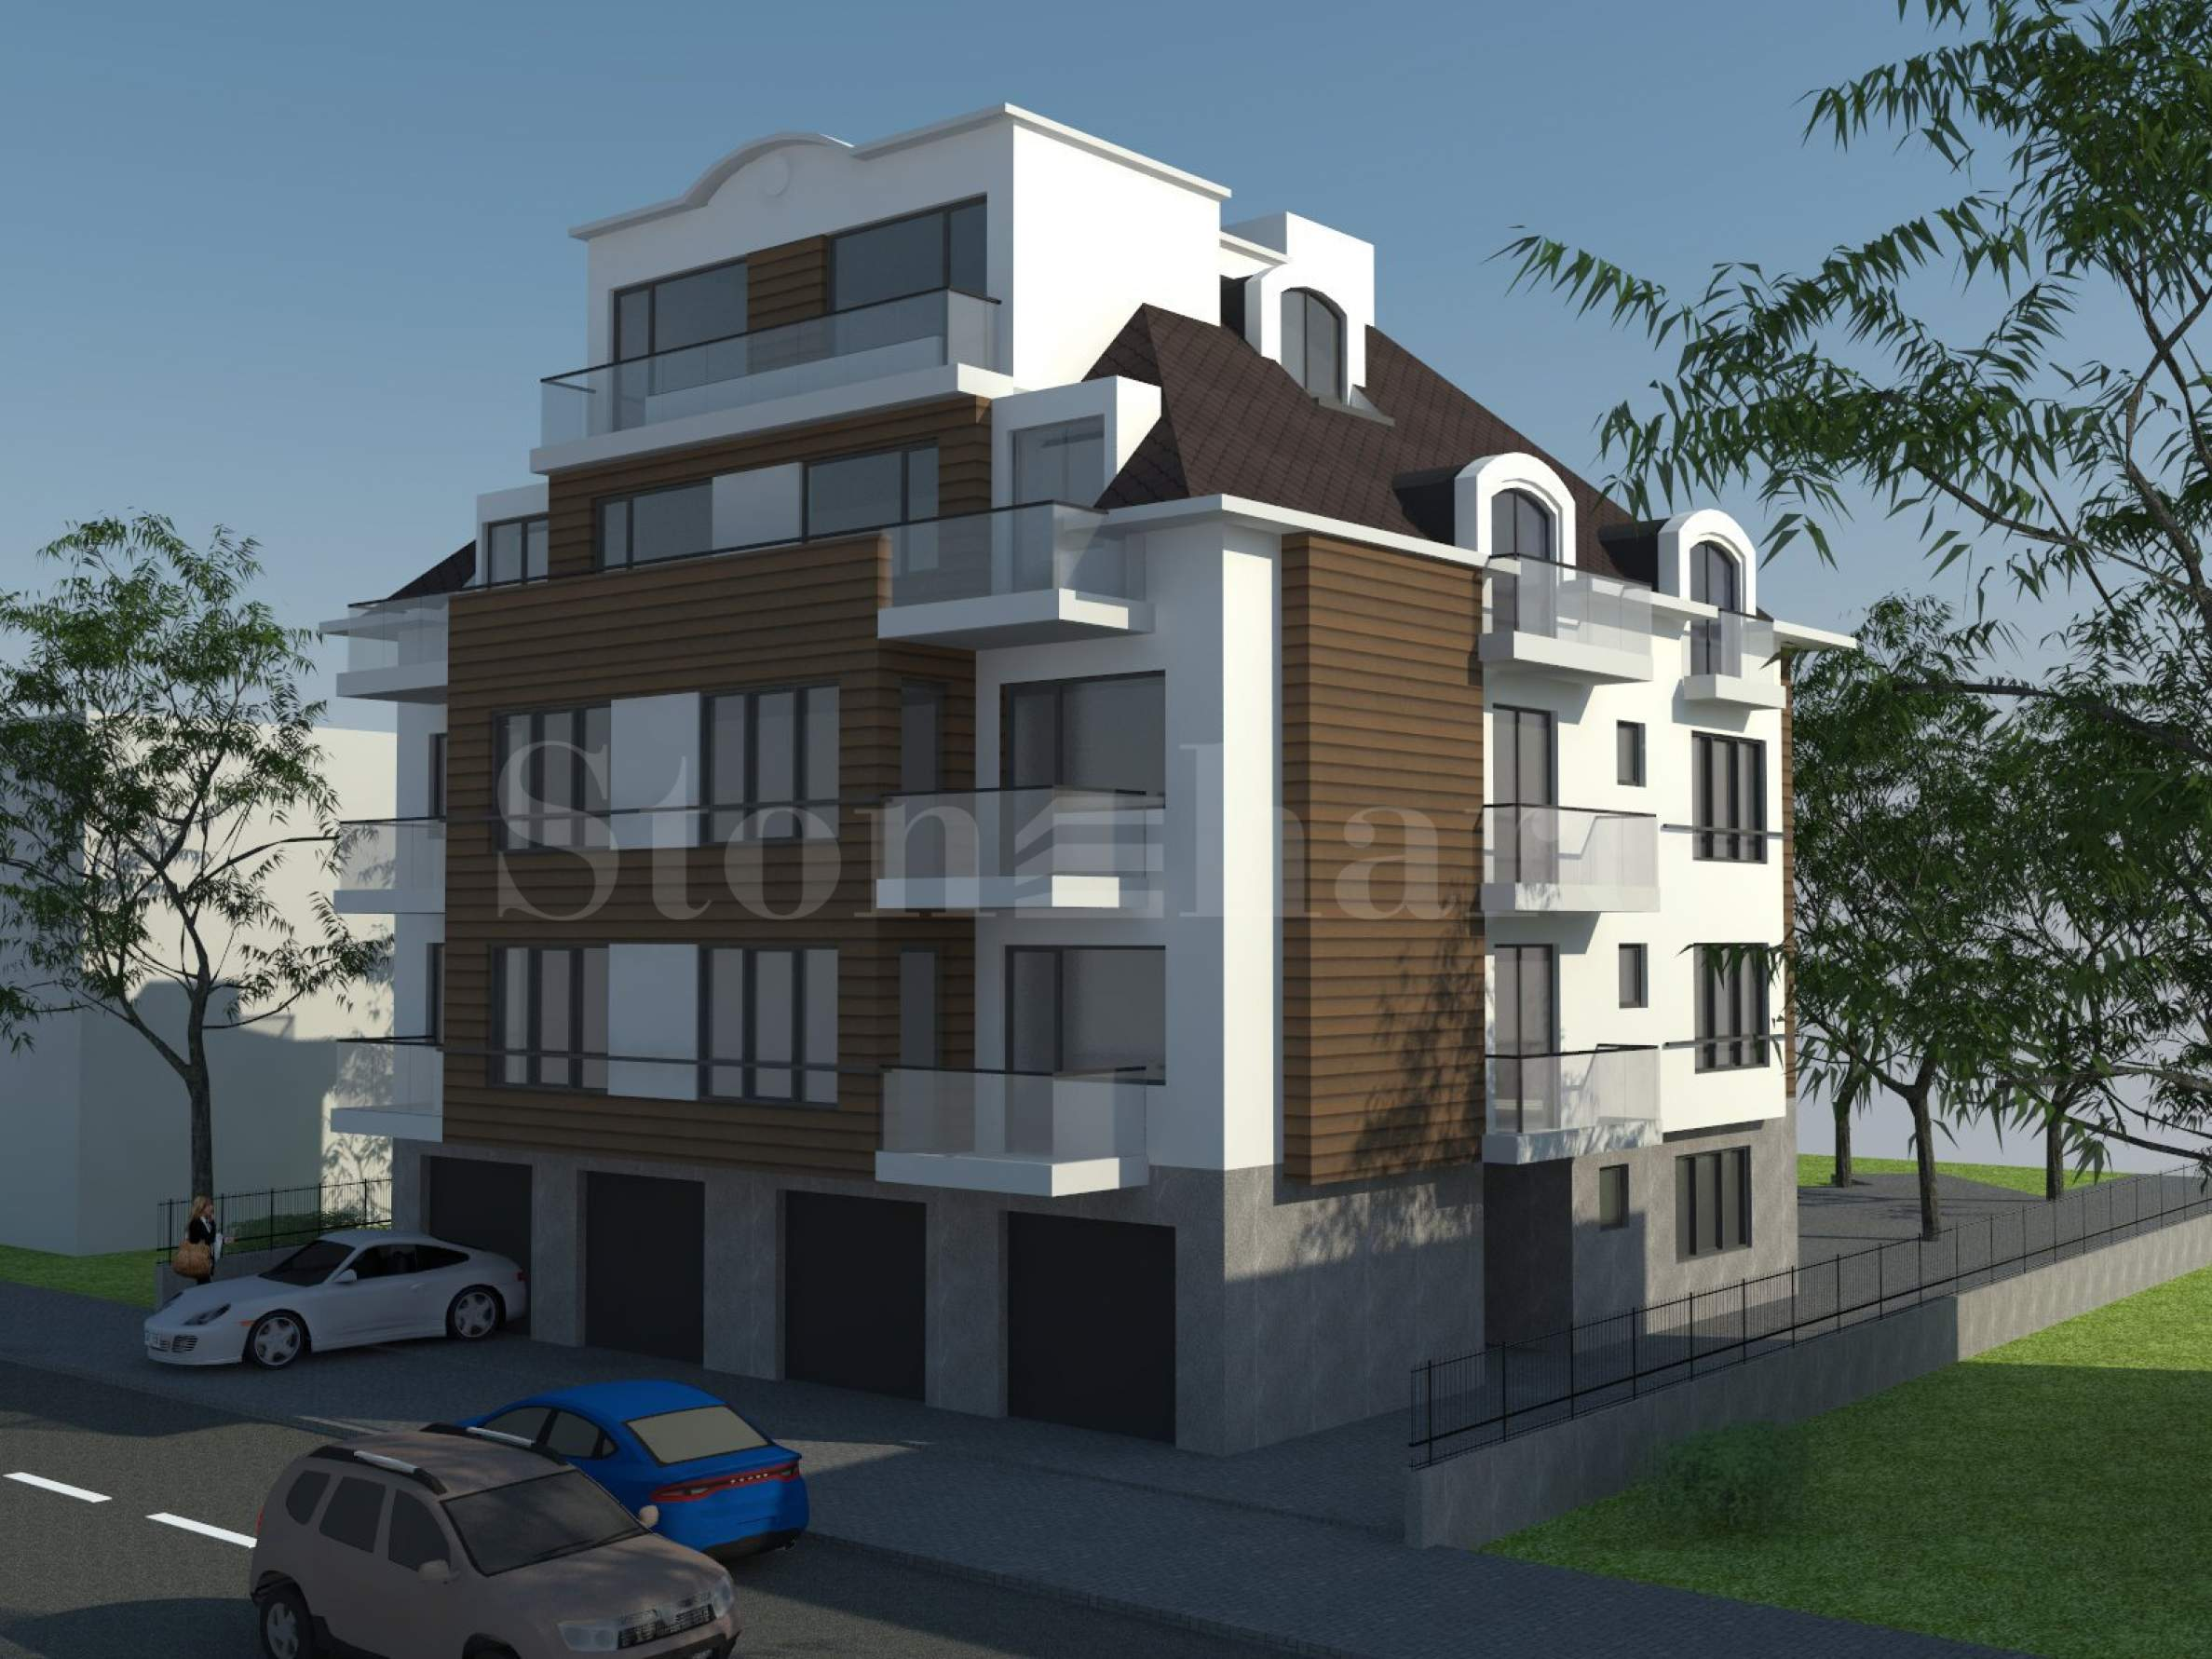 Stylish apartment building on Cherni Vrah Blvd, Krastova Vada District2 - Stonehard